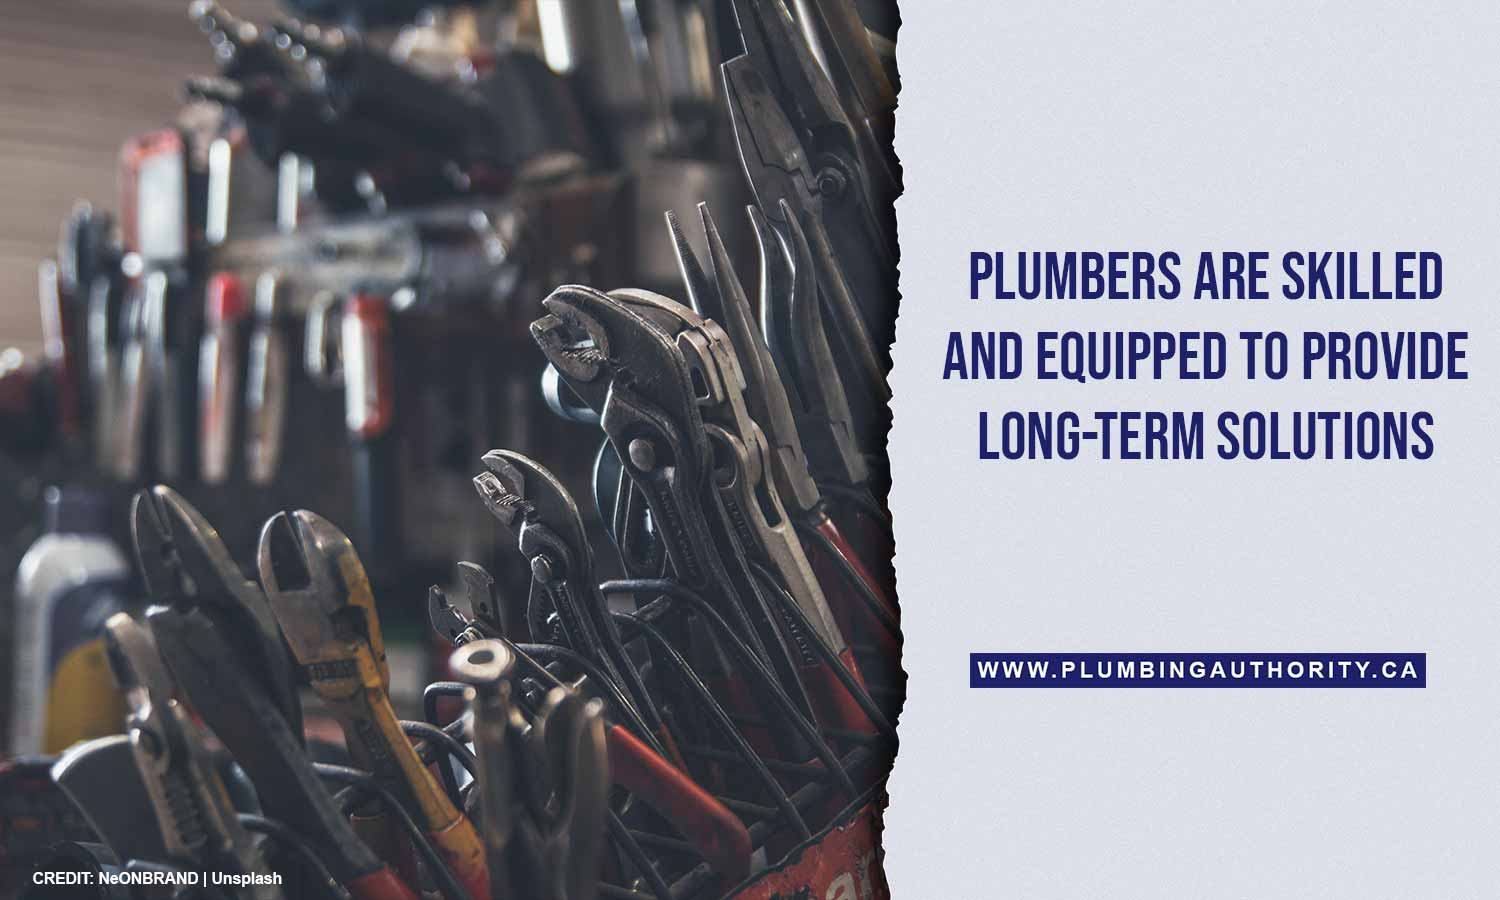 Plumbers are skilled and equipped to provide long-term solutions